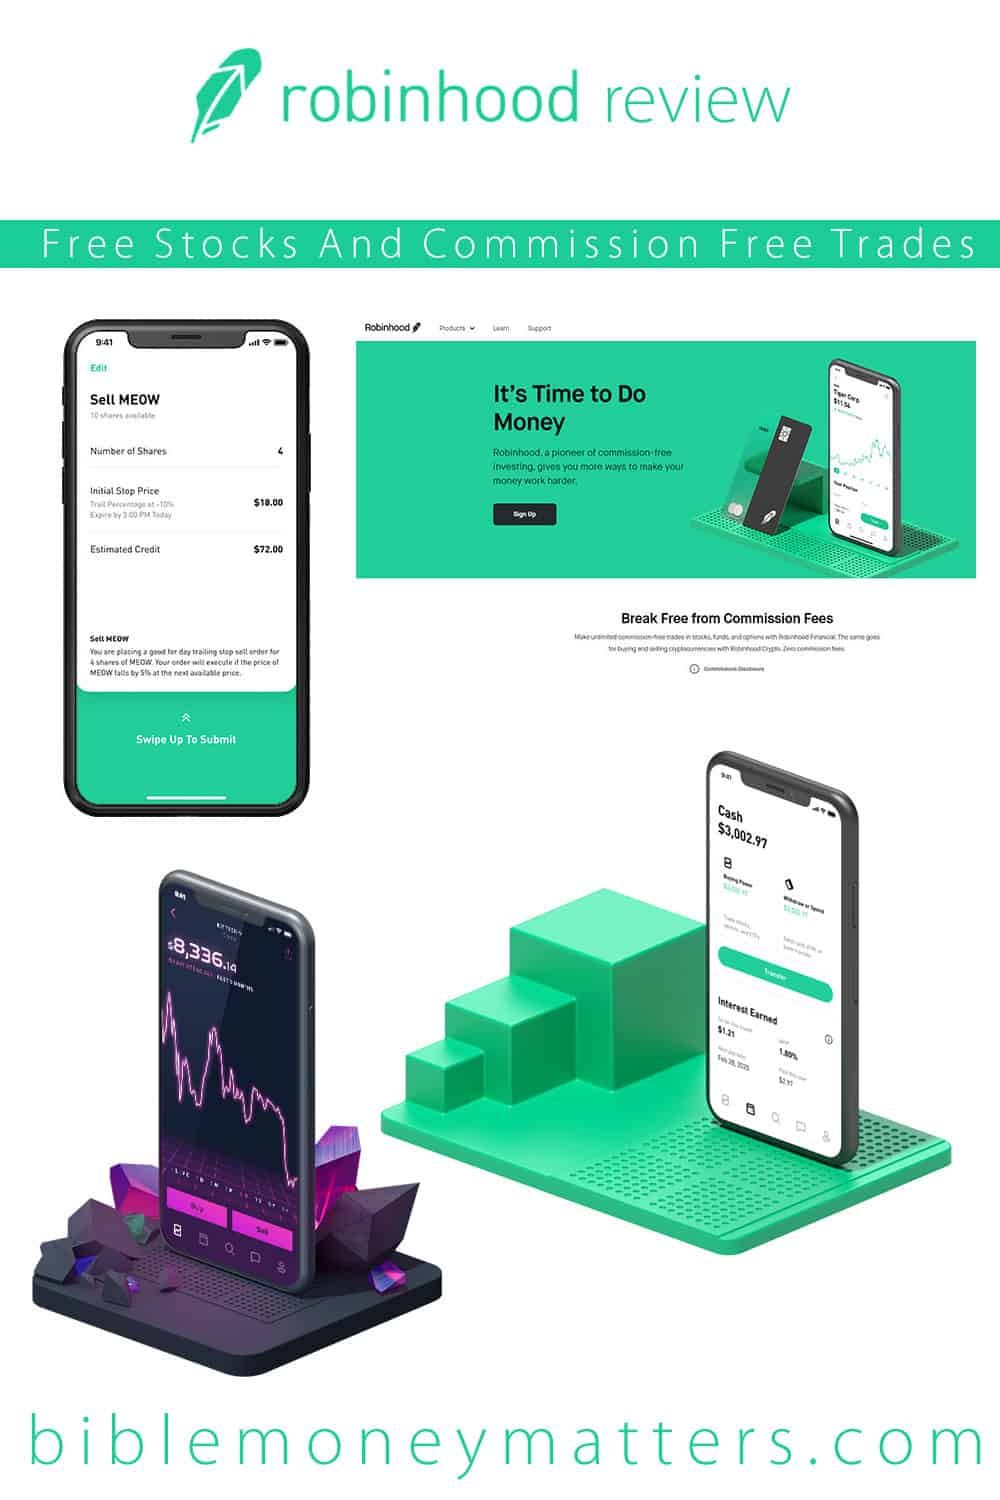 How Much To Take Your Money Out Of Robinhood